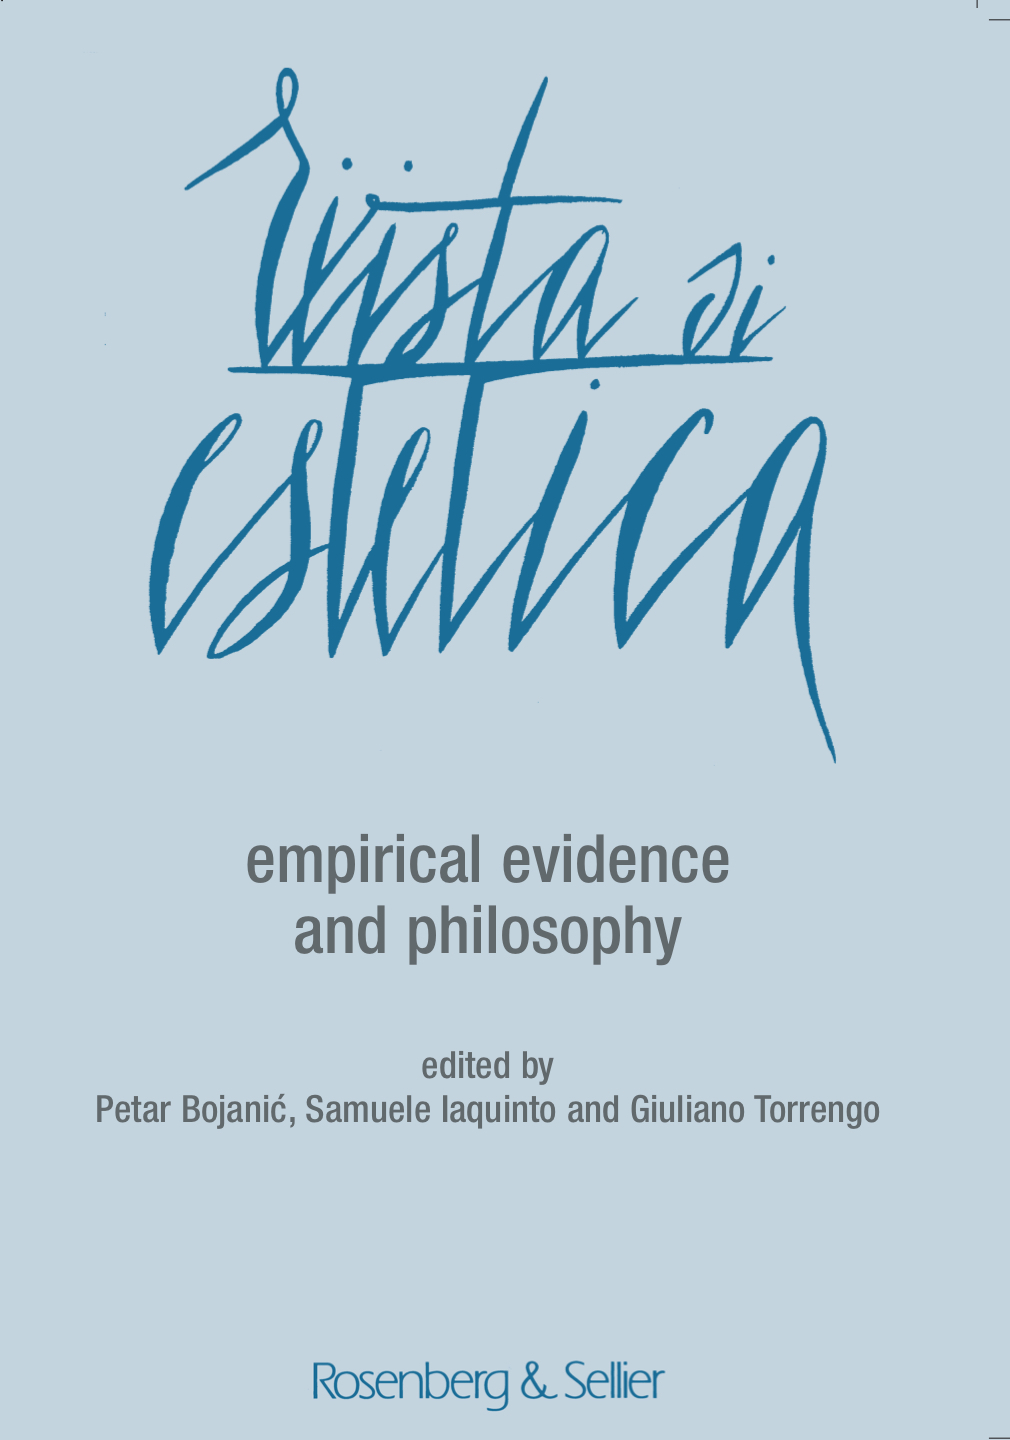 empirical evidence and philosophy -